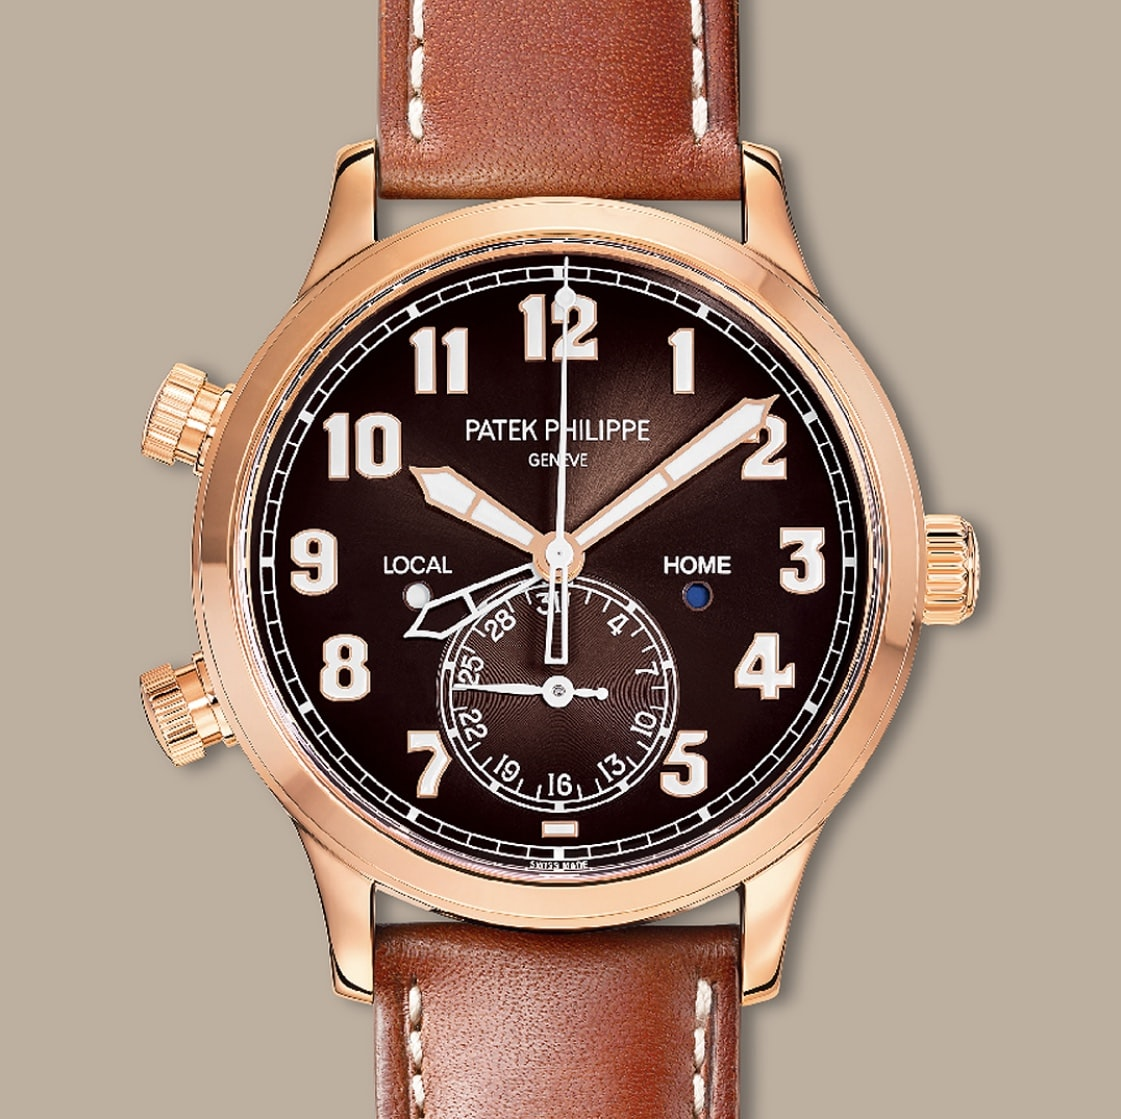 Baselworld 2018: Patek Philippe Is Now On Instagram, And So Is The New 5524R Pilots Watch Baselworld 2018: Patek Philippe Is Now On Instagram, And So Is The New 5524R Pilots Watch IMG 2360